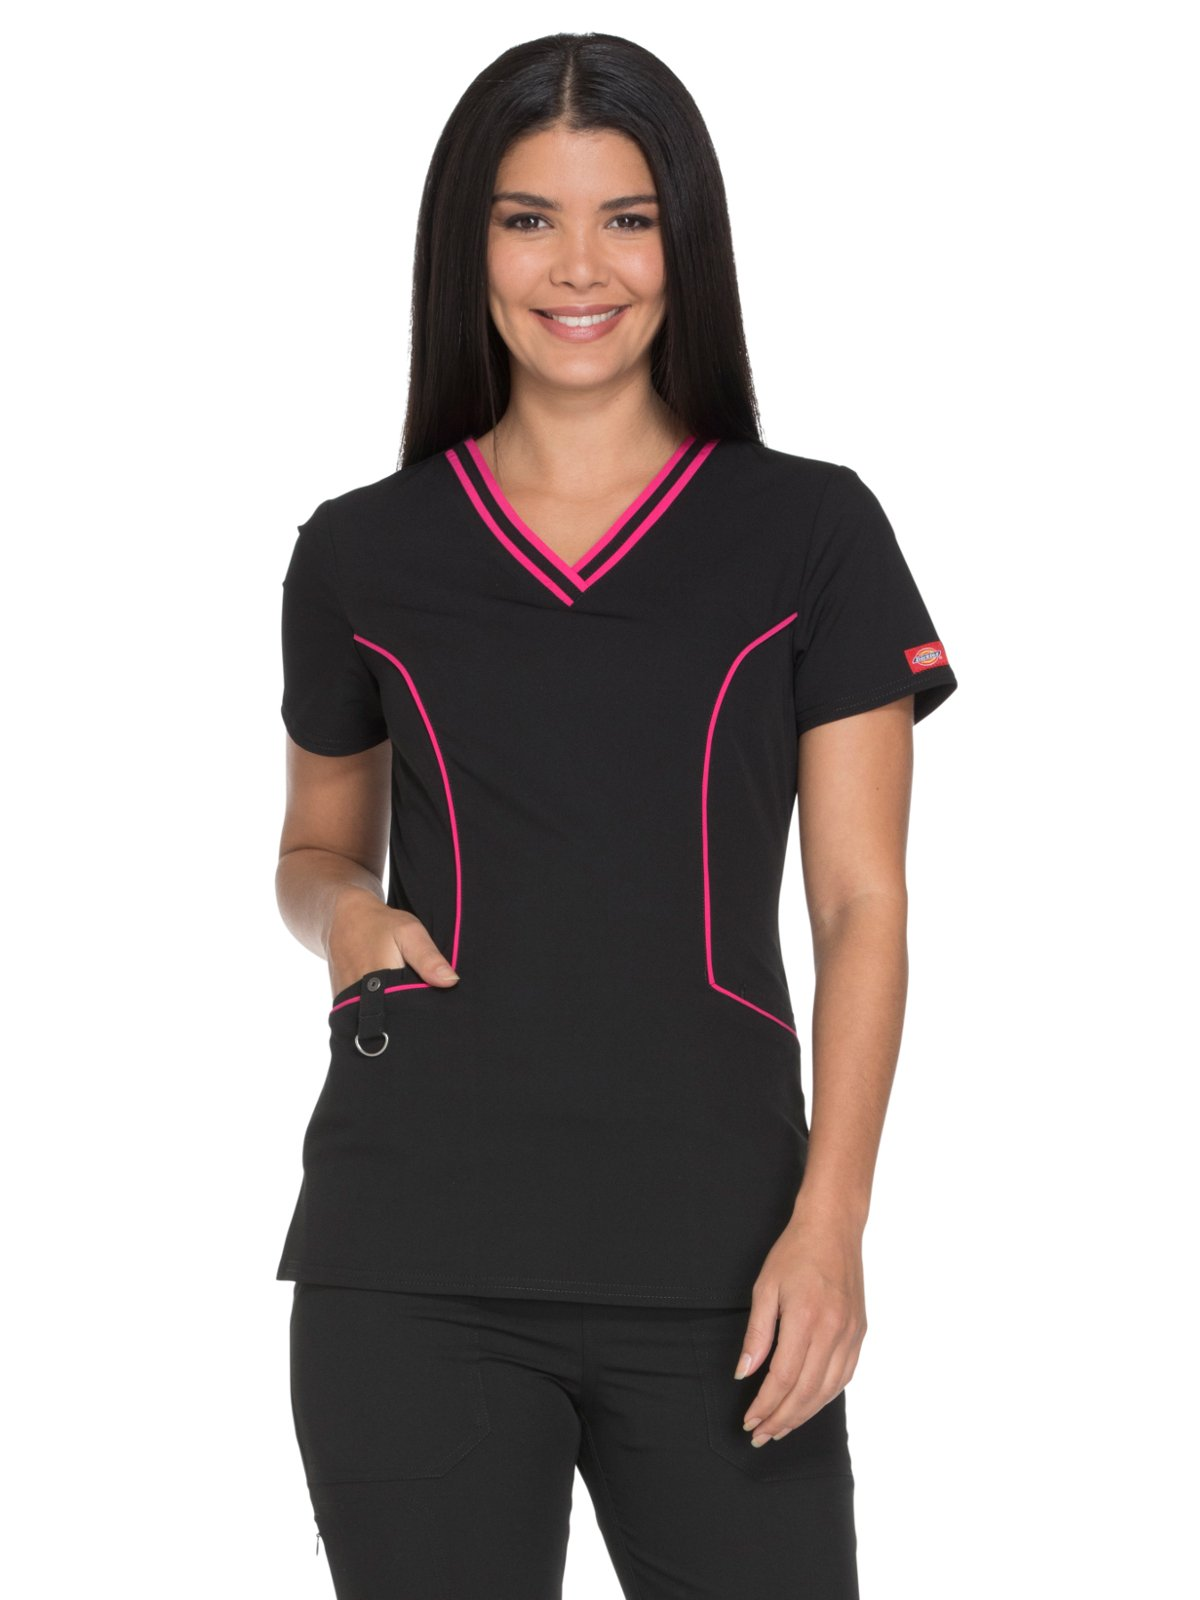 Dickies Xtreme Stretch Women's V-Neck Solid Scrub Top Medium Black